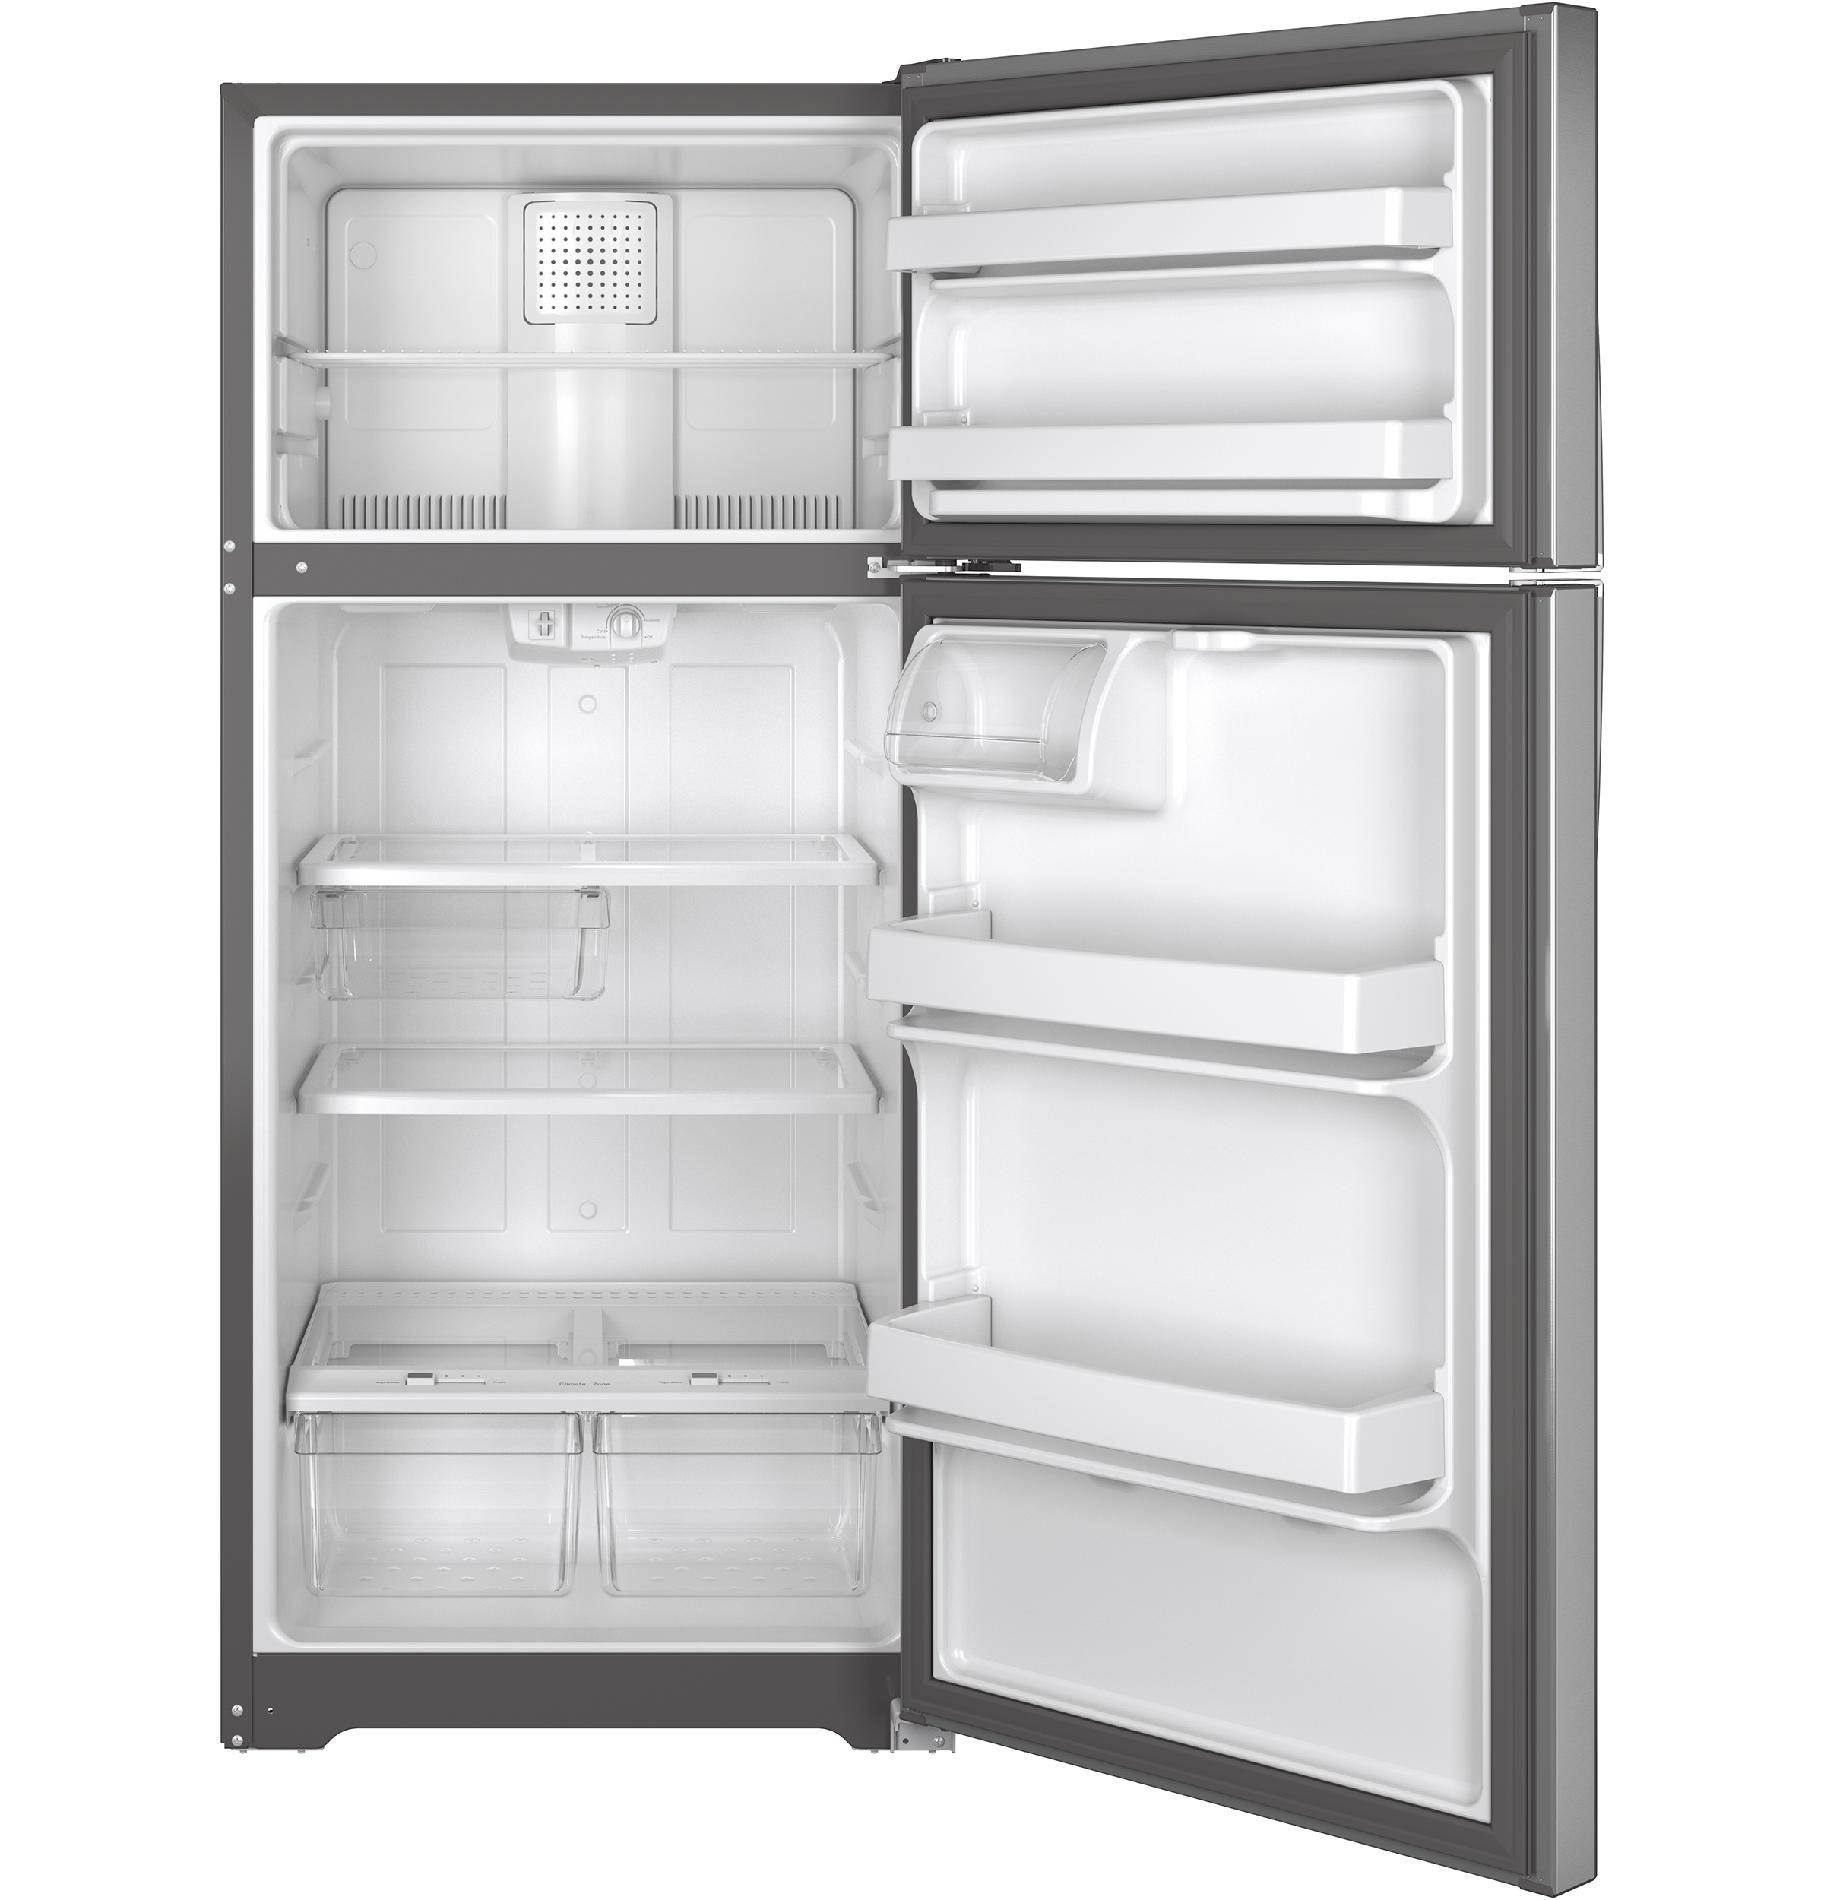 GE Appliances GTS16GSHSS 15.5 cu. ft. Top-Freezer Refrigerator - Stainless Steel